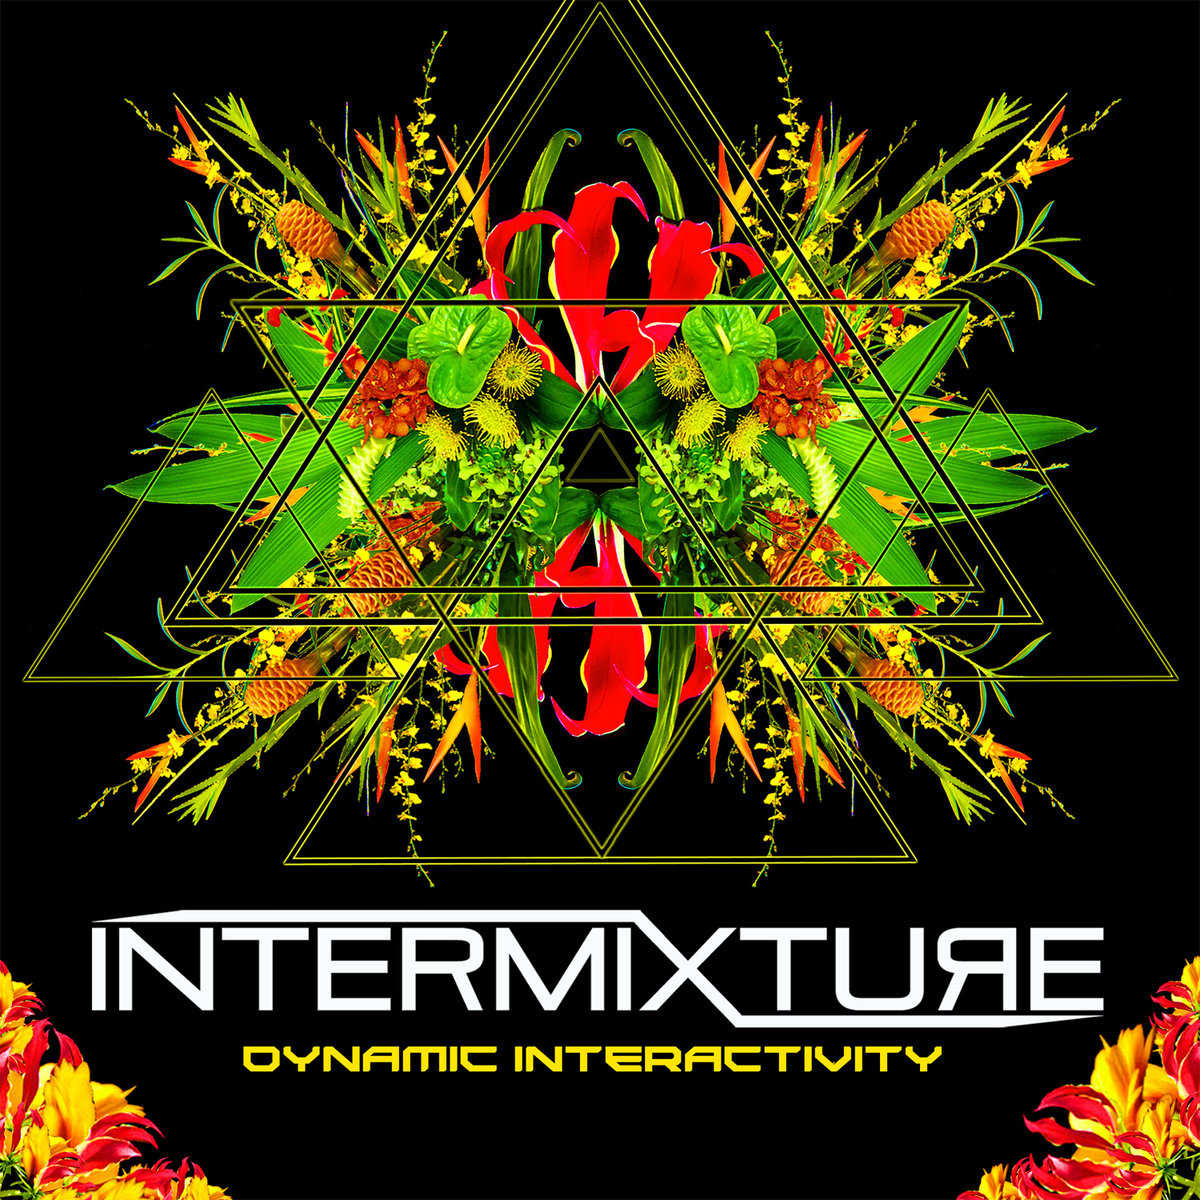 Intermixture - Dynamic Interactivity